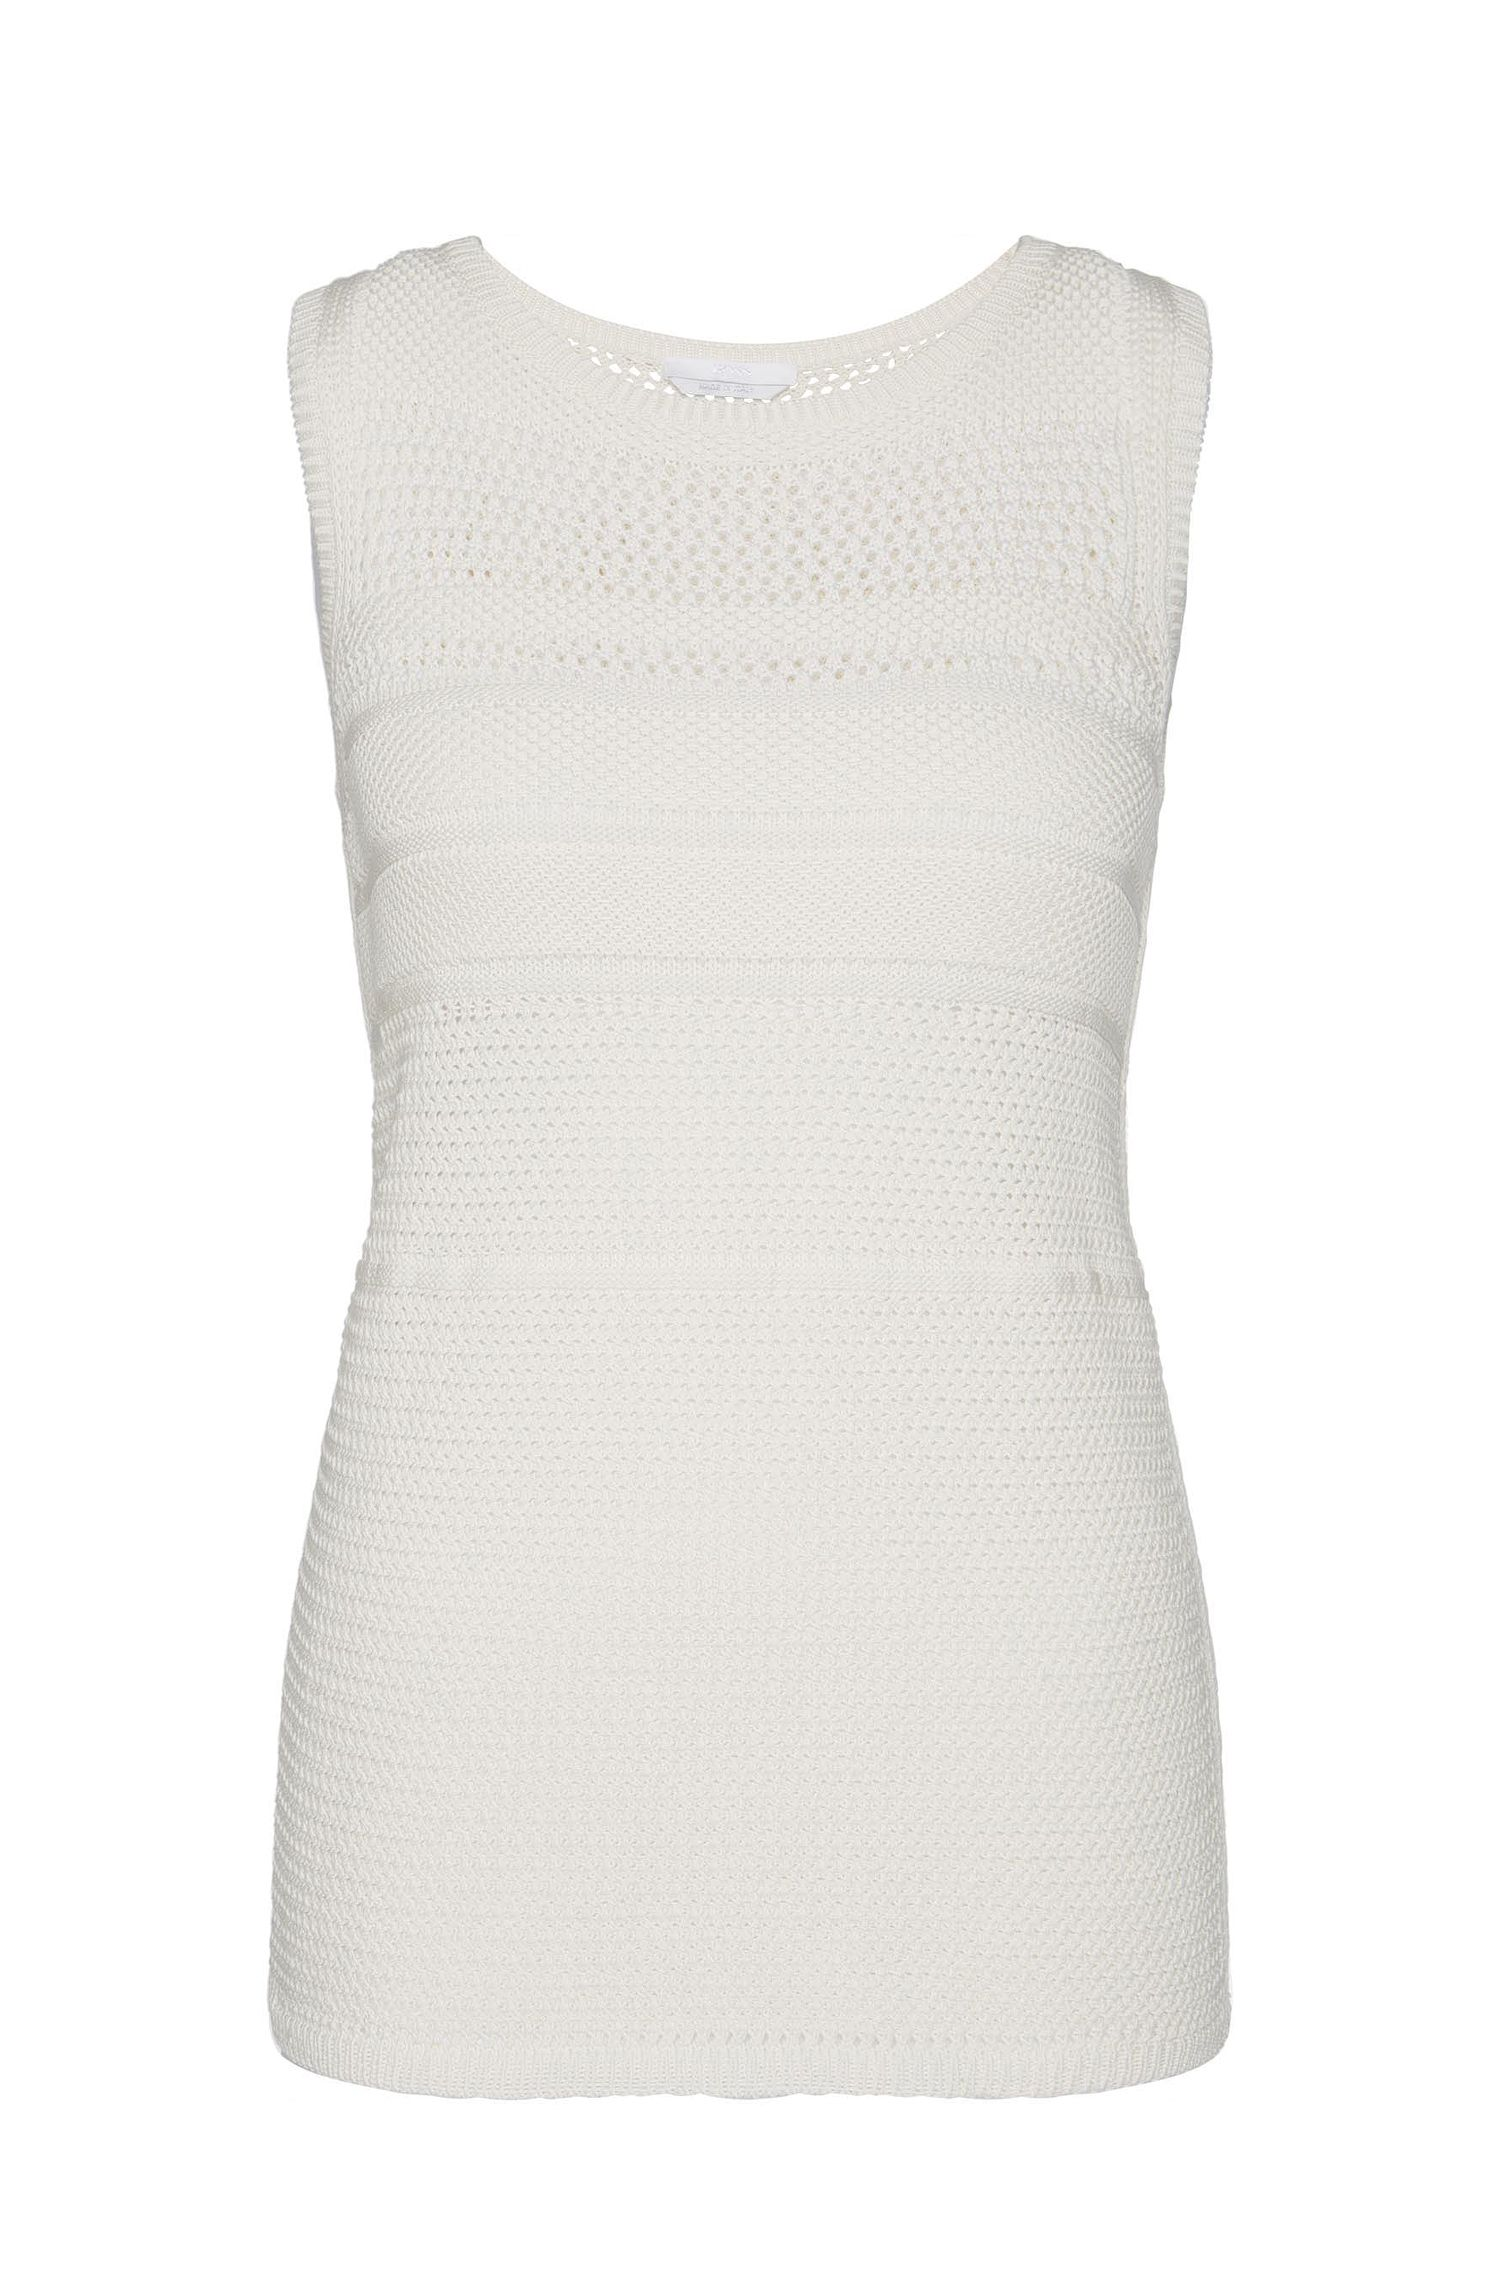 Knitted top in cotton with a perforated pattern: 'Faride'